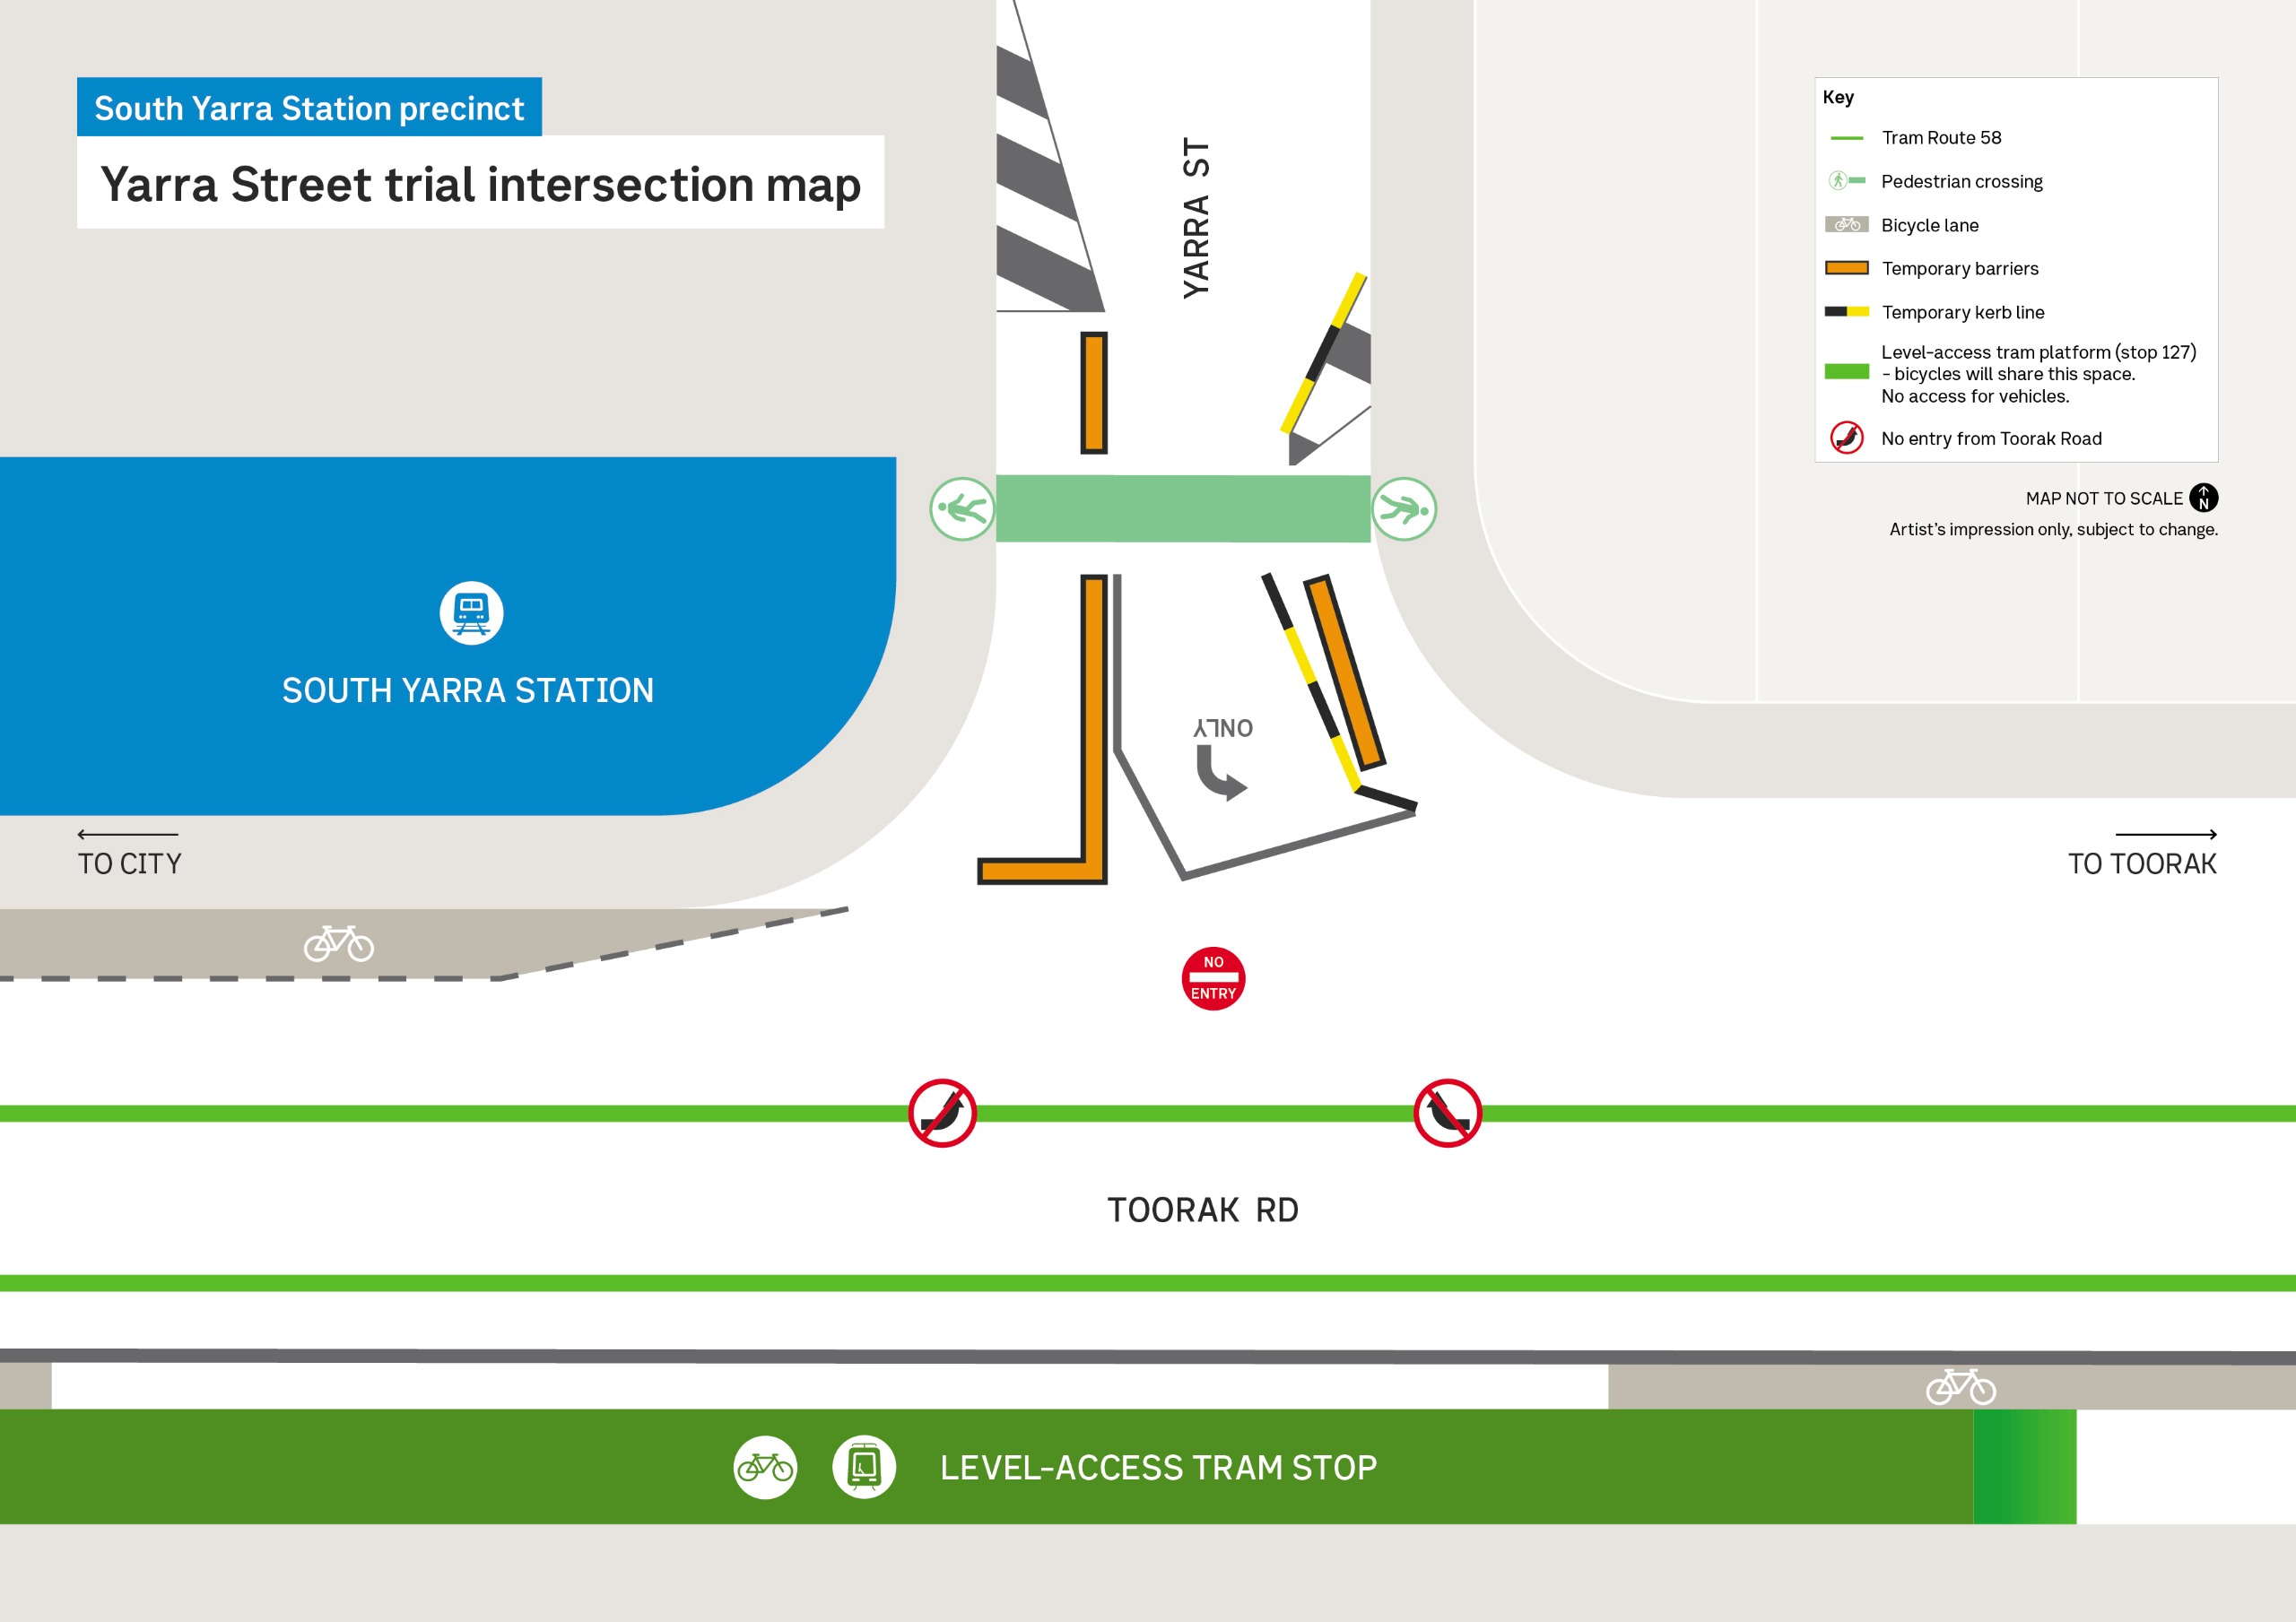 Design plan for new tram stop showing traffic changes at Yarra Street and Toorak Road intersection. There is a No Entry sign at entrance to Yarra Street, and no left or right hand turn from Toorak Road. There are temporary barriers and kerb lines to widen